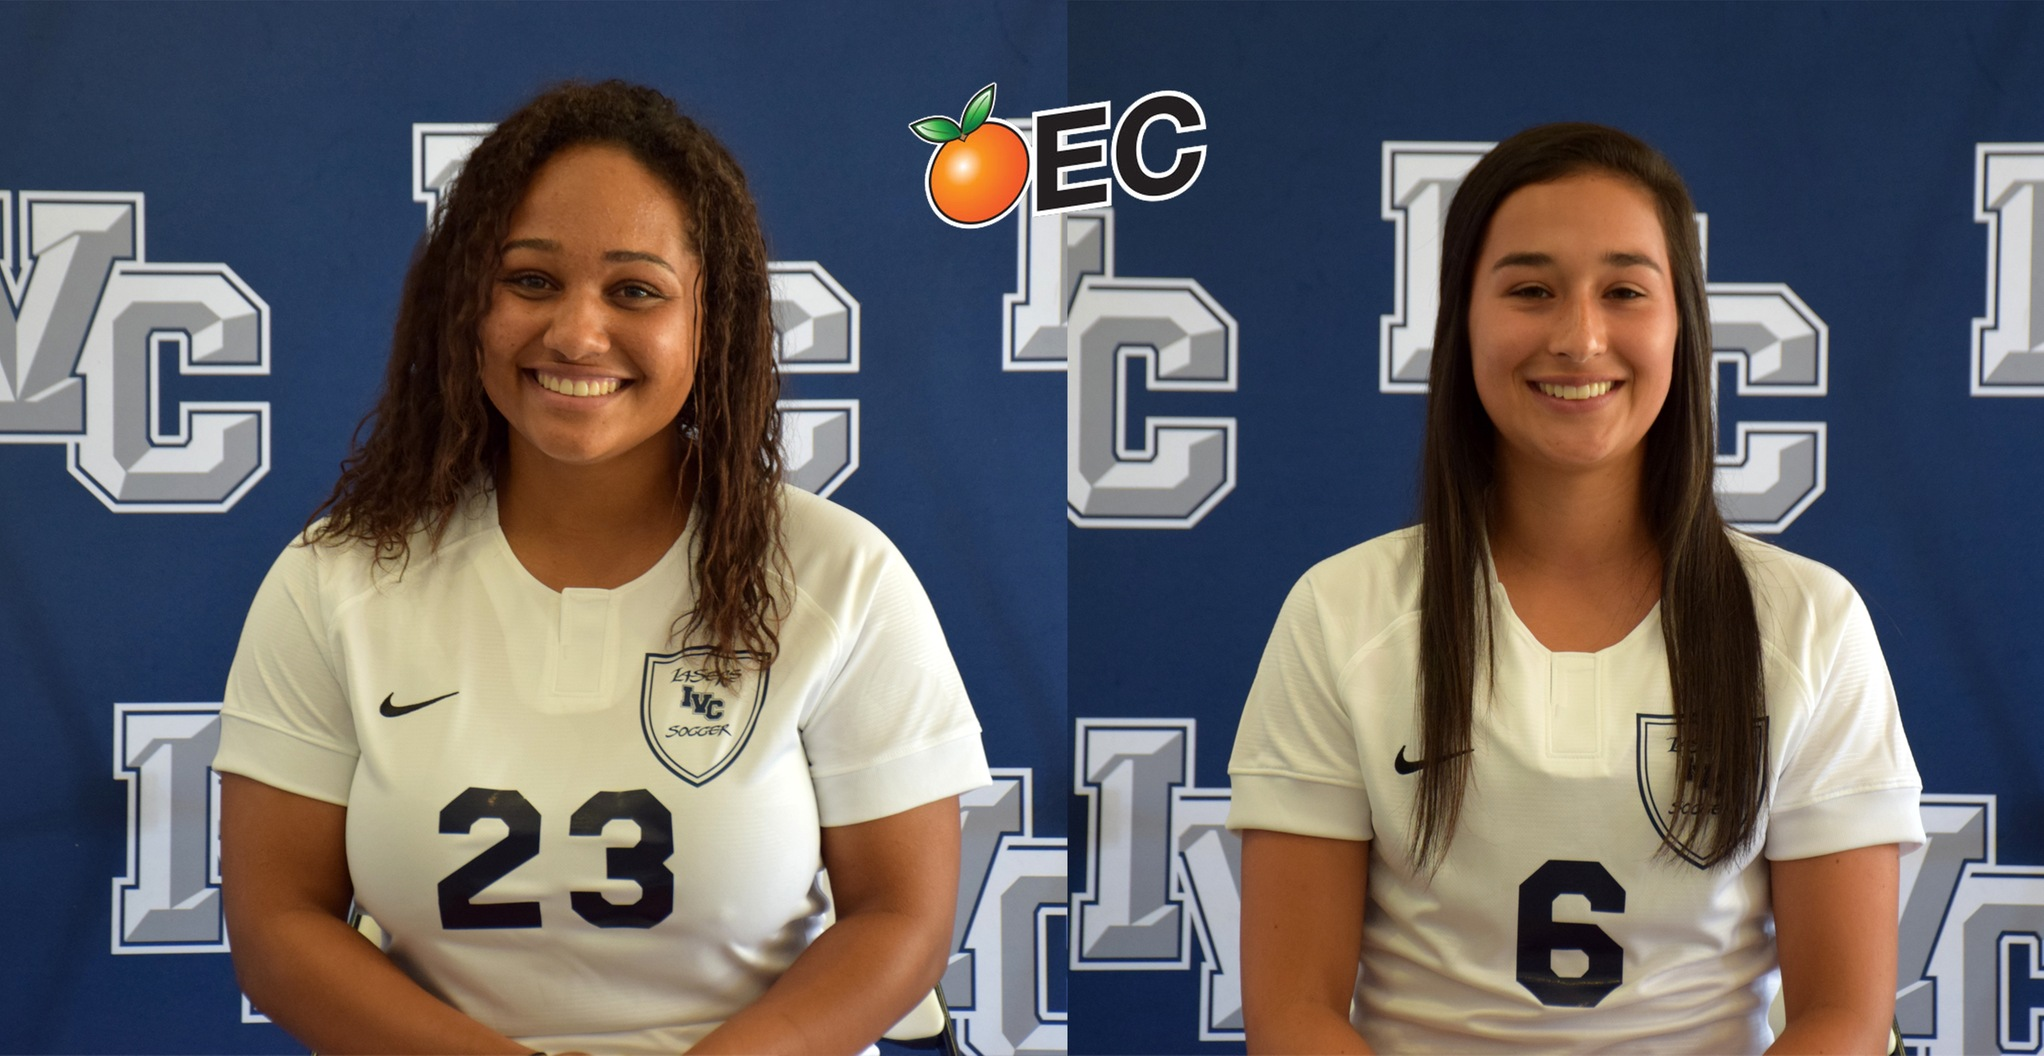 Women's soccer players Hayes and Fuentes named all-OEC